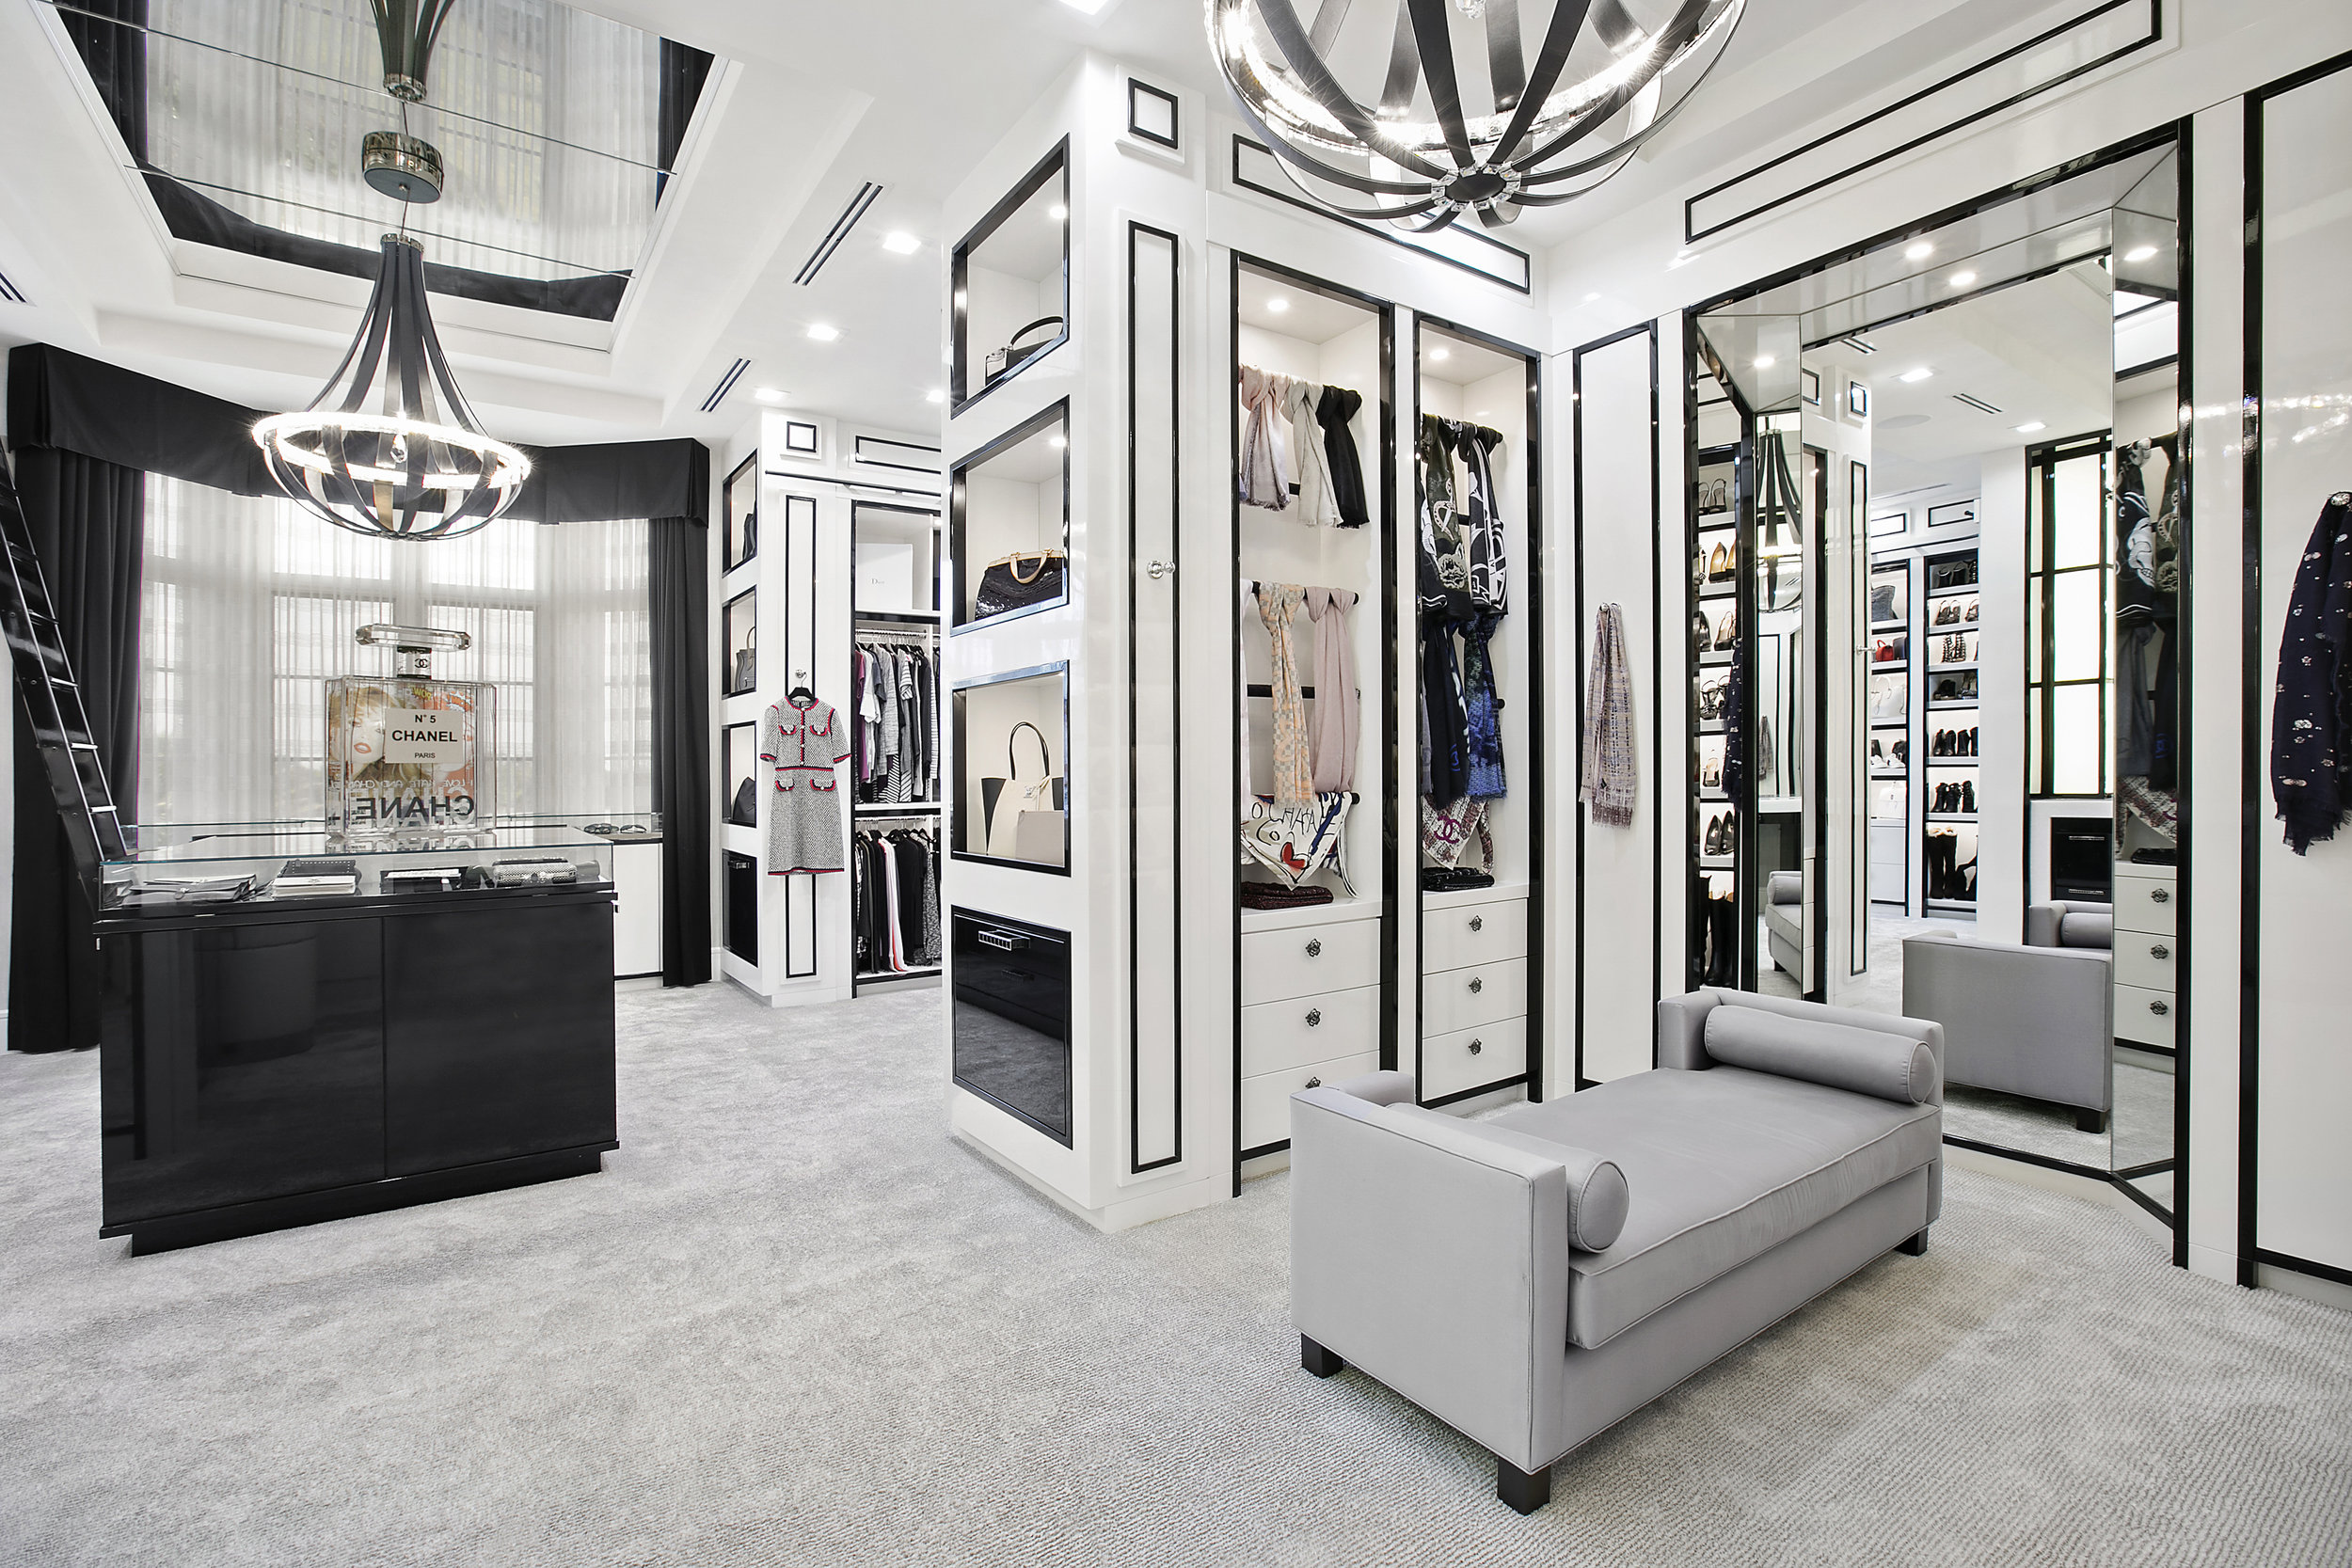 Do You Wish You Had a Chanel Boutique For Your Closet? Only At Delray Beach's Newest $20 Million Listing